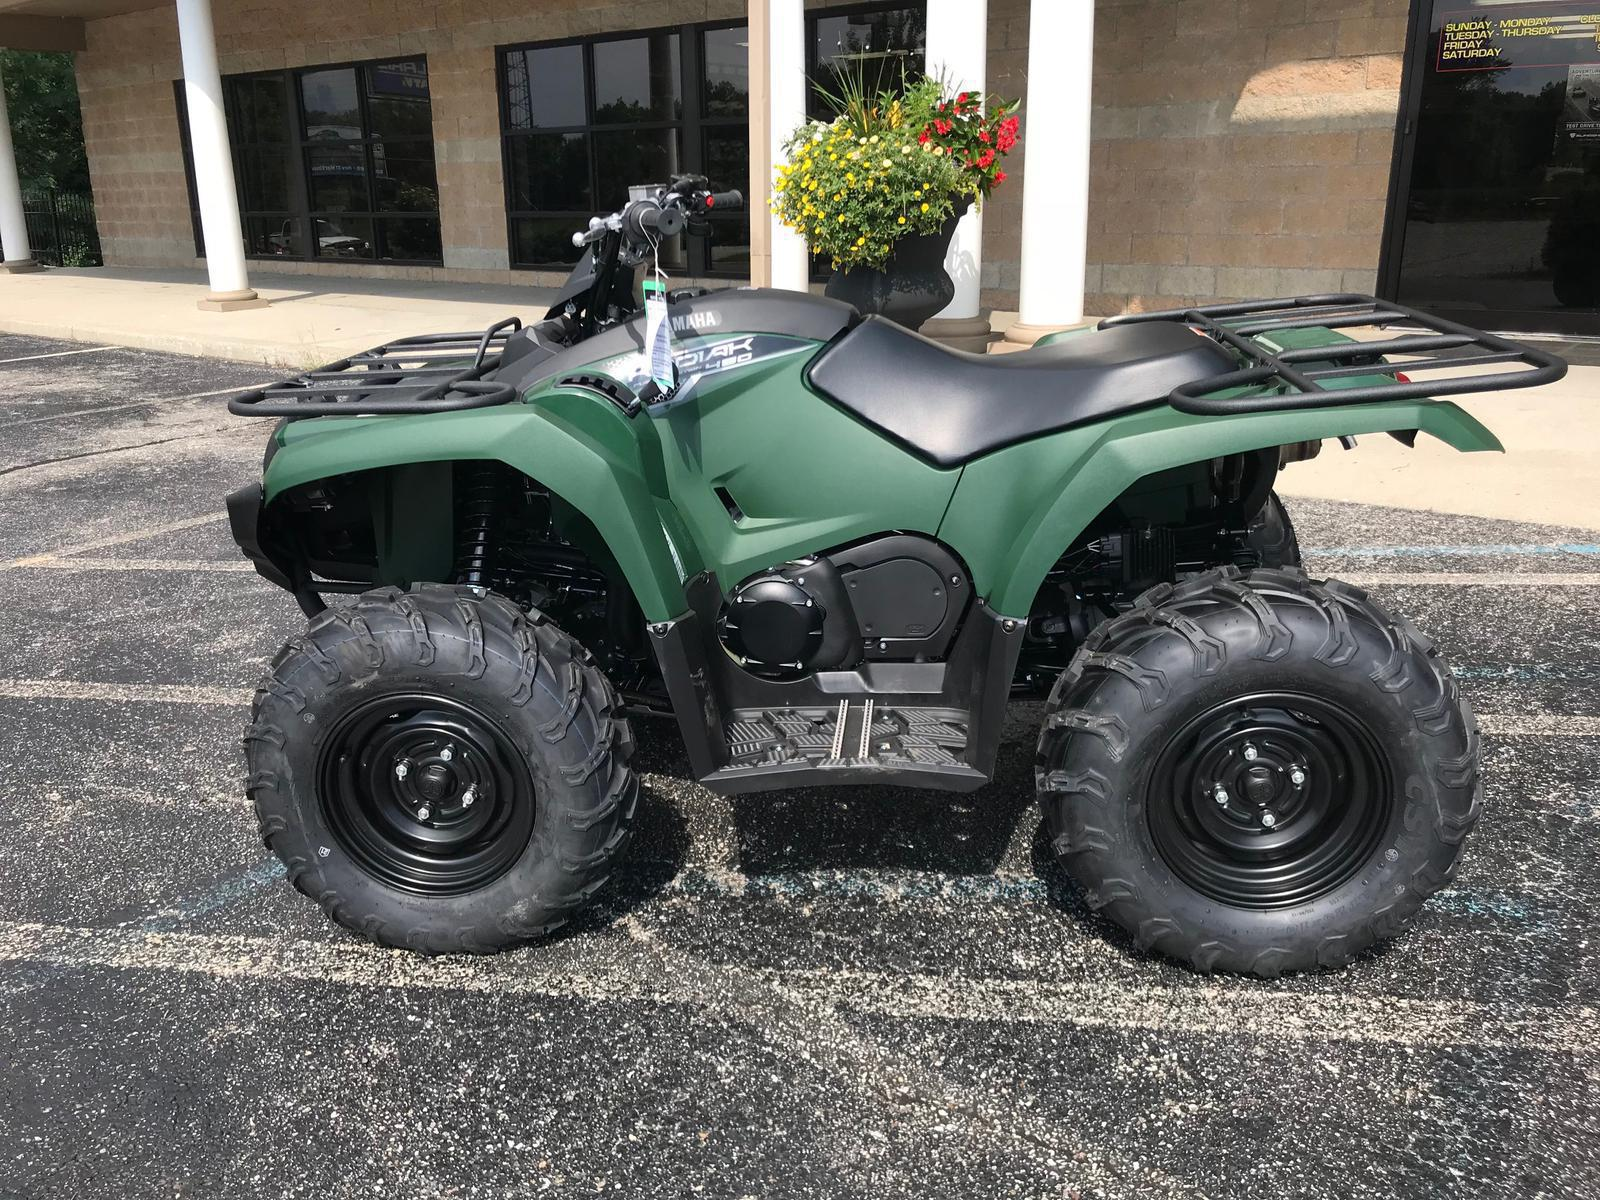 2018 Yamaha Kodiak 450 Awd For Sale In Martinsville Flat Out Fuel Filter Green 9